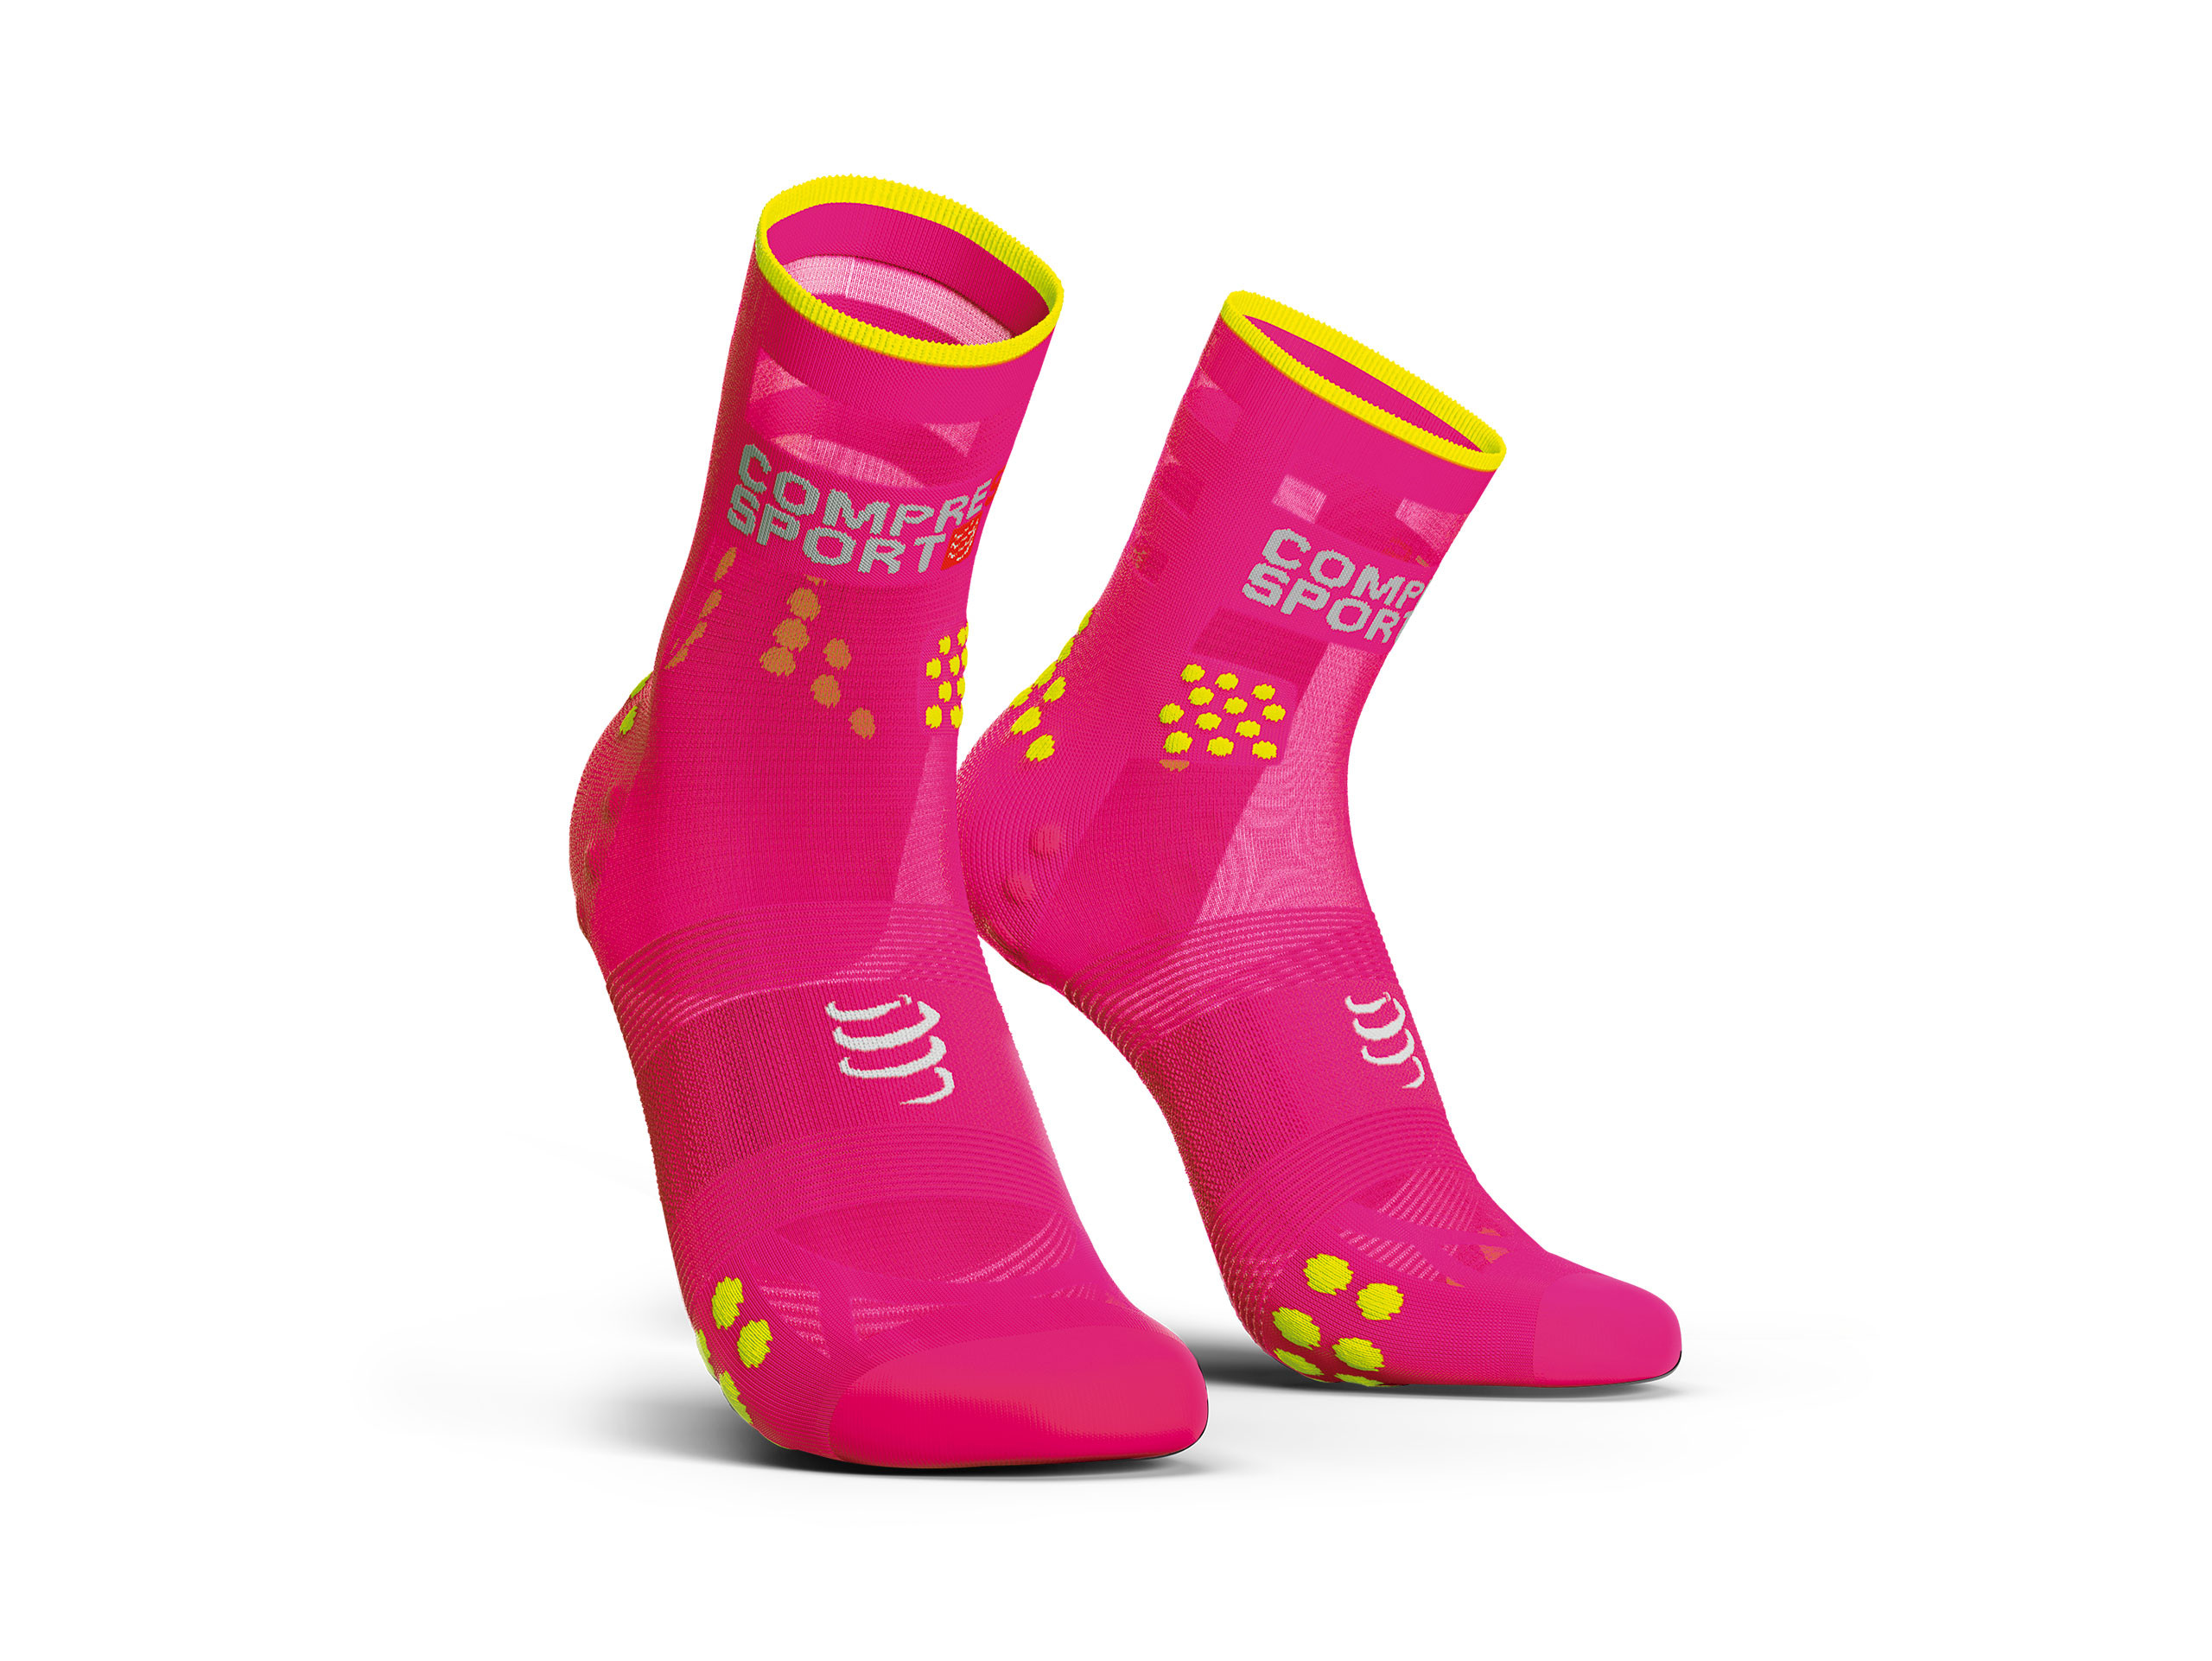 Pro Racing Socks v3.0 Run Ultralight Run High fluo pink